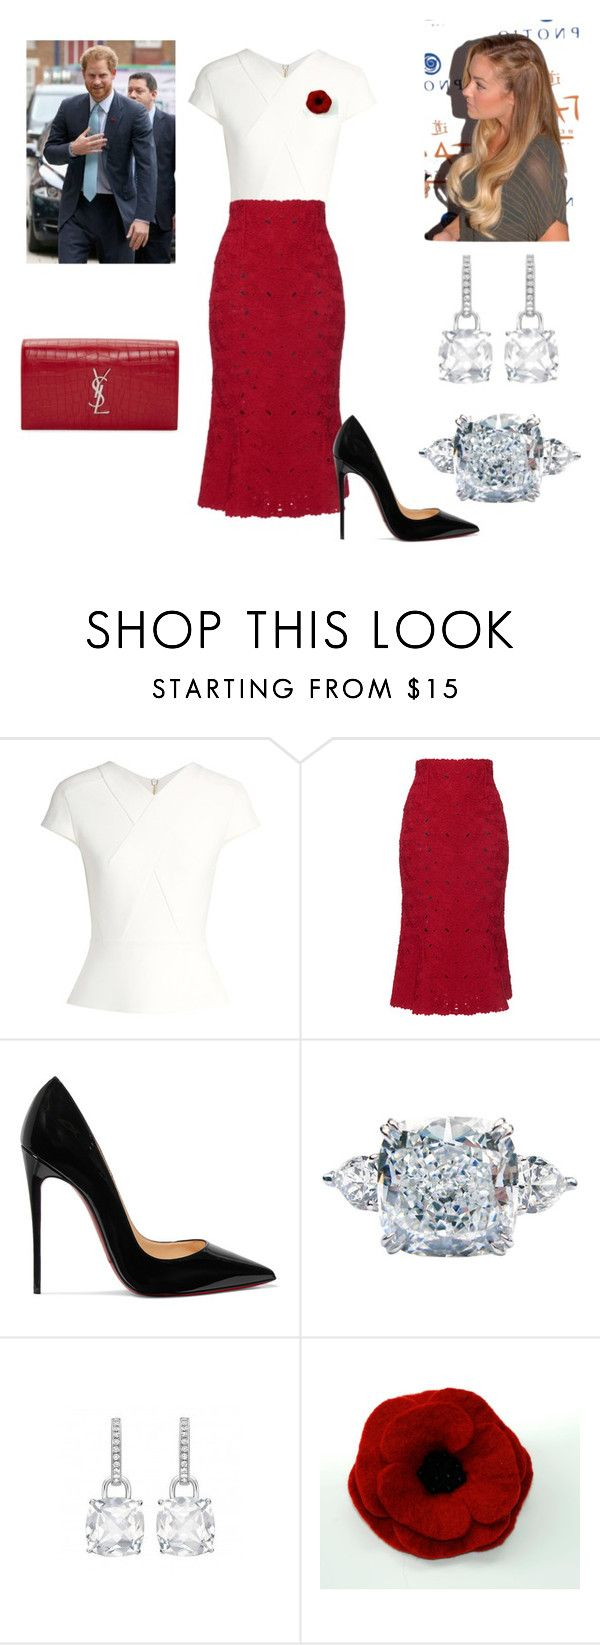 """""""Duke and Duchess at Reception for UK Olympians"""" by royal-fashion ❤ liked on Polyvore featuring Roland Mouret, Lauren Conrad, Salvatore Ferragamo, Christian Louboutin, J. Birnbach and Yves Saint Laurent"""